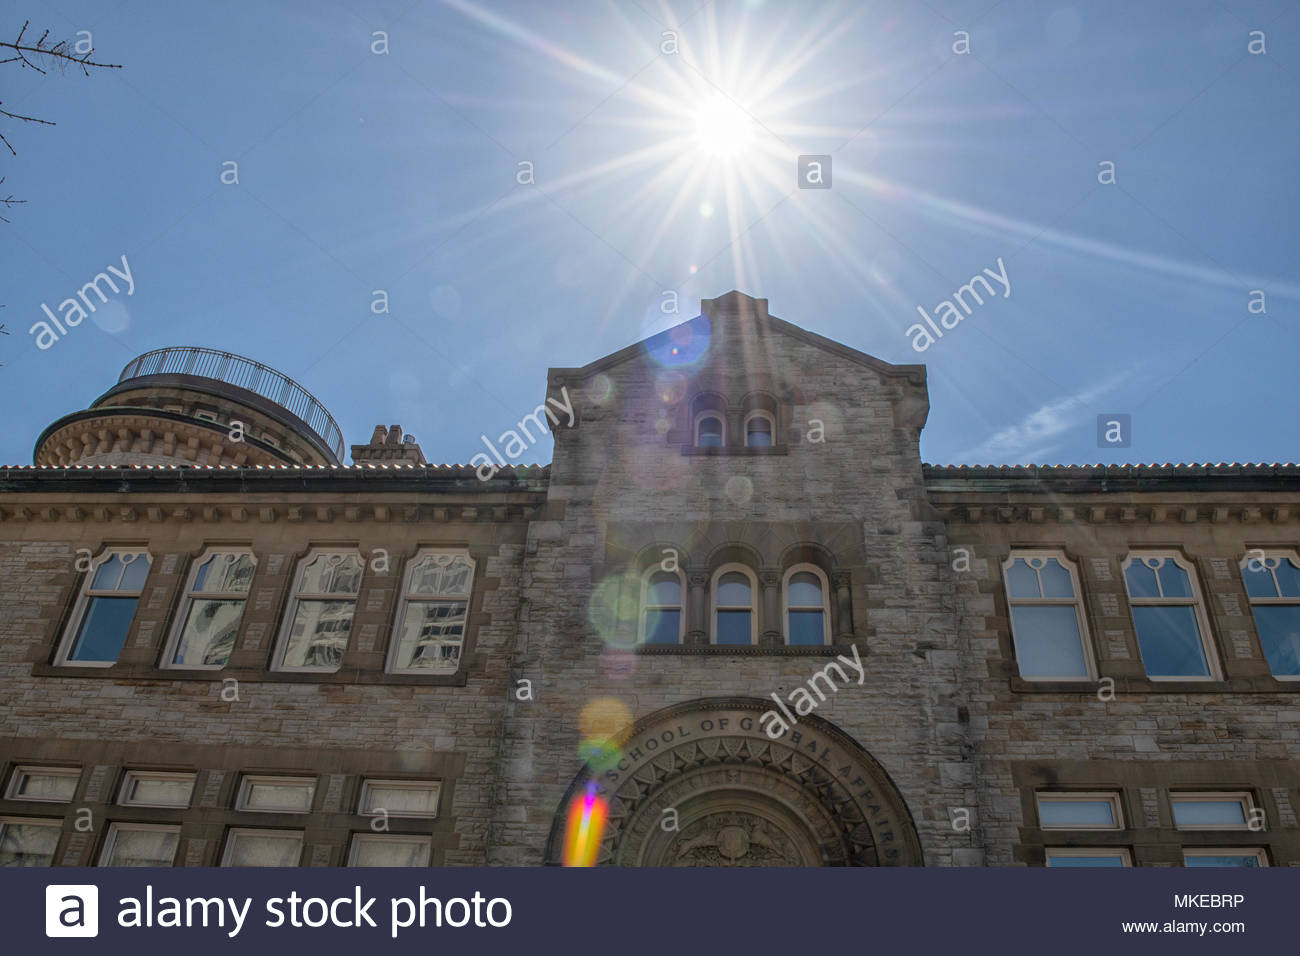 Munk School of Global Affairs, facade or entrance to the old architecture building located in Bloor Street West. The sun is in the blue clear sky - Stock Image